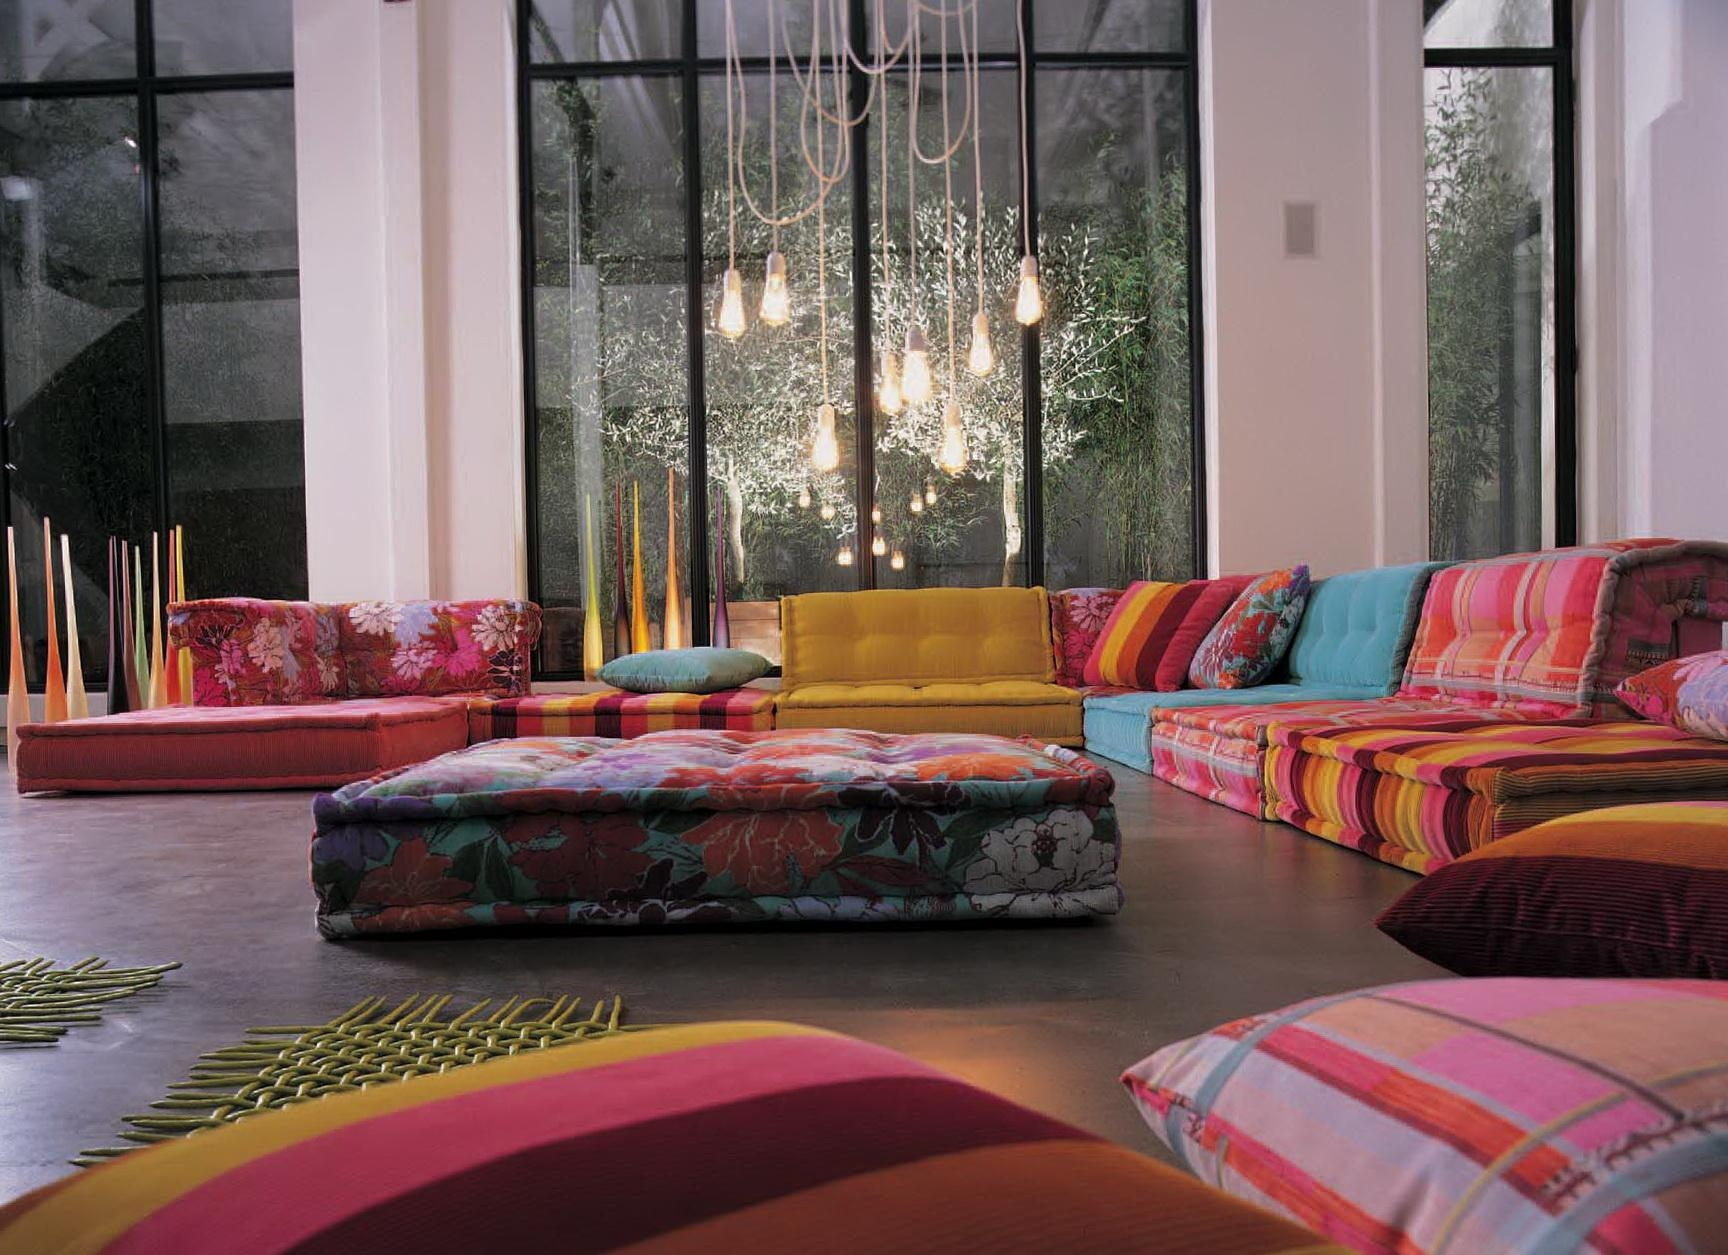 Ikea Floor Cushions Uk Home Design Ideas Seating Sofa Decor Diy Intended For Floor Cushion Sofas (View 6 of 20)